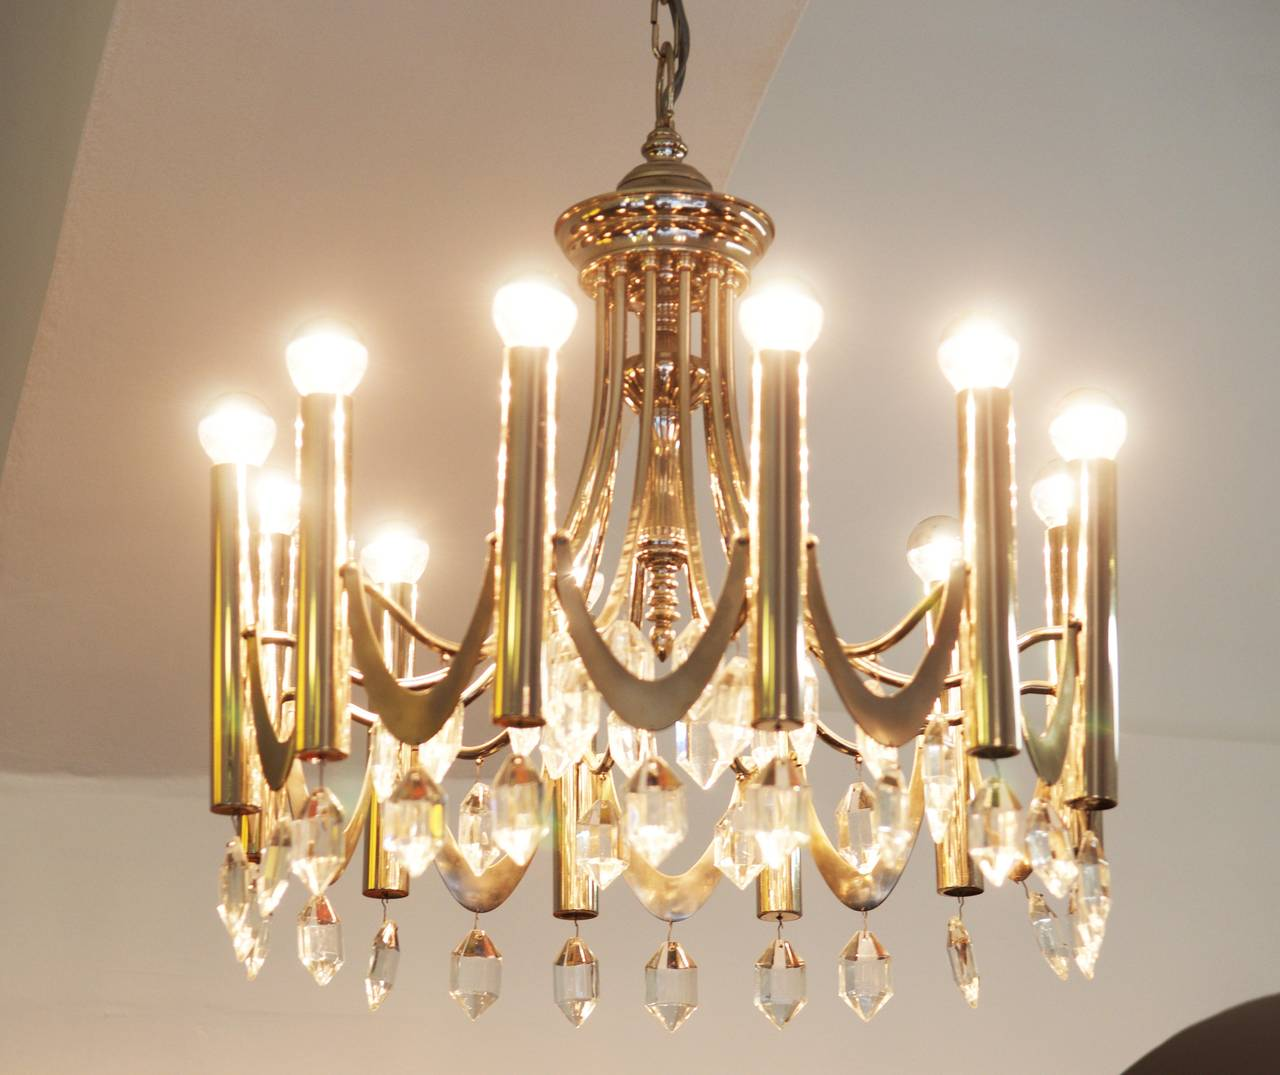 Large Chandelier Attributed to Gaetano Sciolari from 1960s For Sale 3